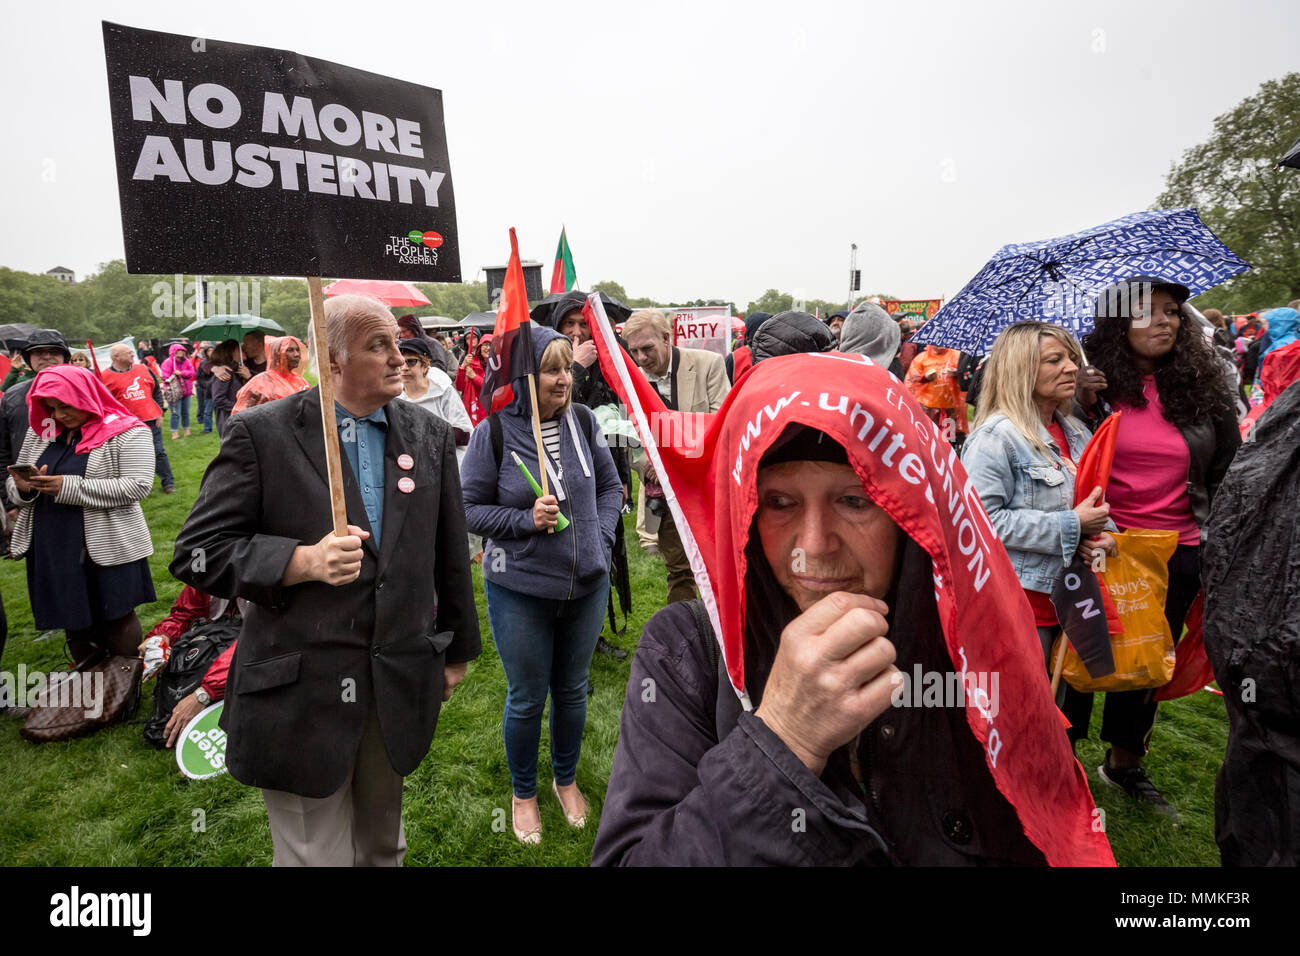 London, UK. 12th May, 2018. Despite the heavy rain, thousands turn up to hear the Labour Party leader, Jeremy Corbyn, address trade unionists during a TUC rally in Hyde Park on the theme of 'a new deal for working people', aimed against government austerity and injustice. Credit: Guy Corbishley/Alamy Live News - Stock Image